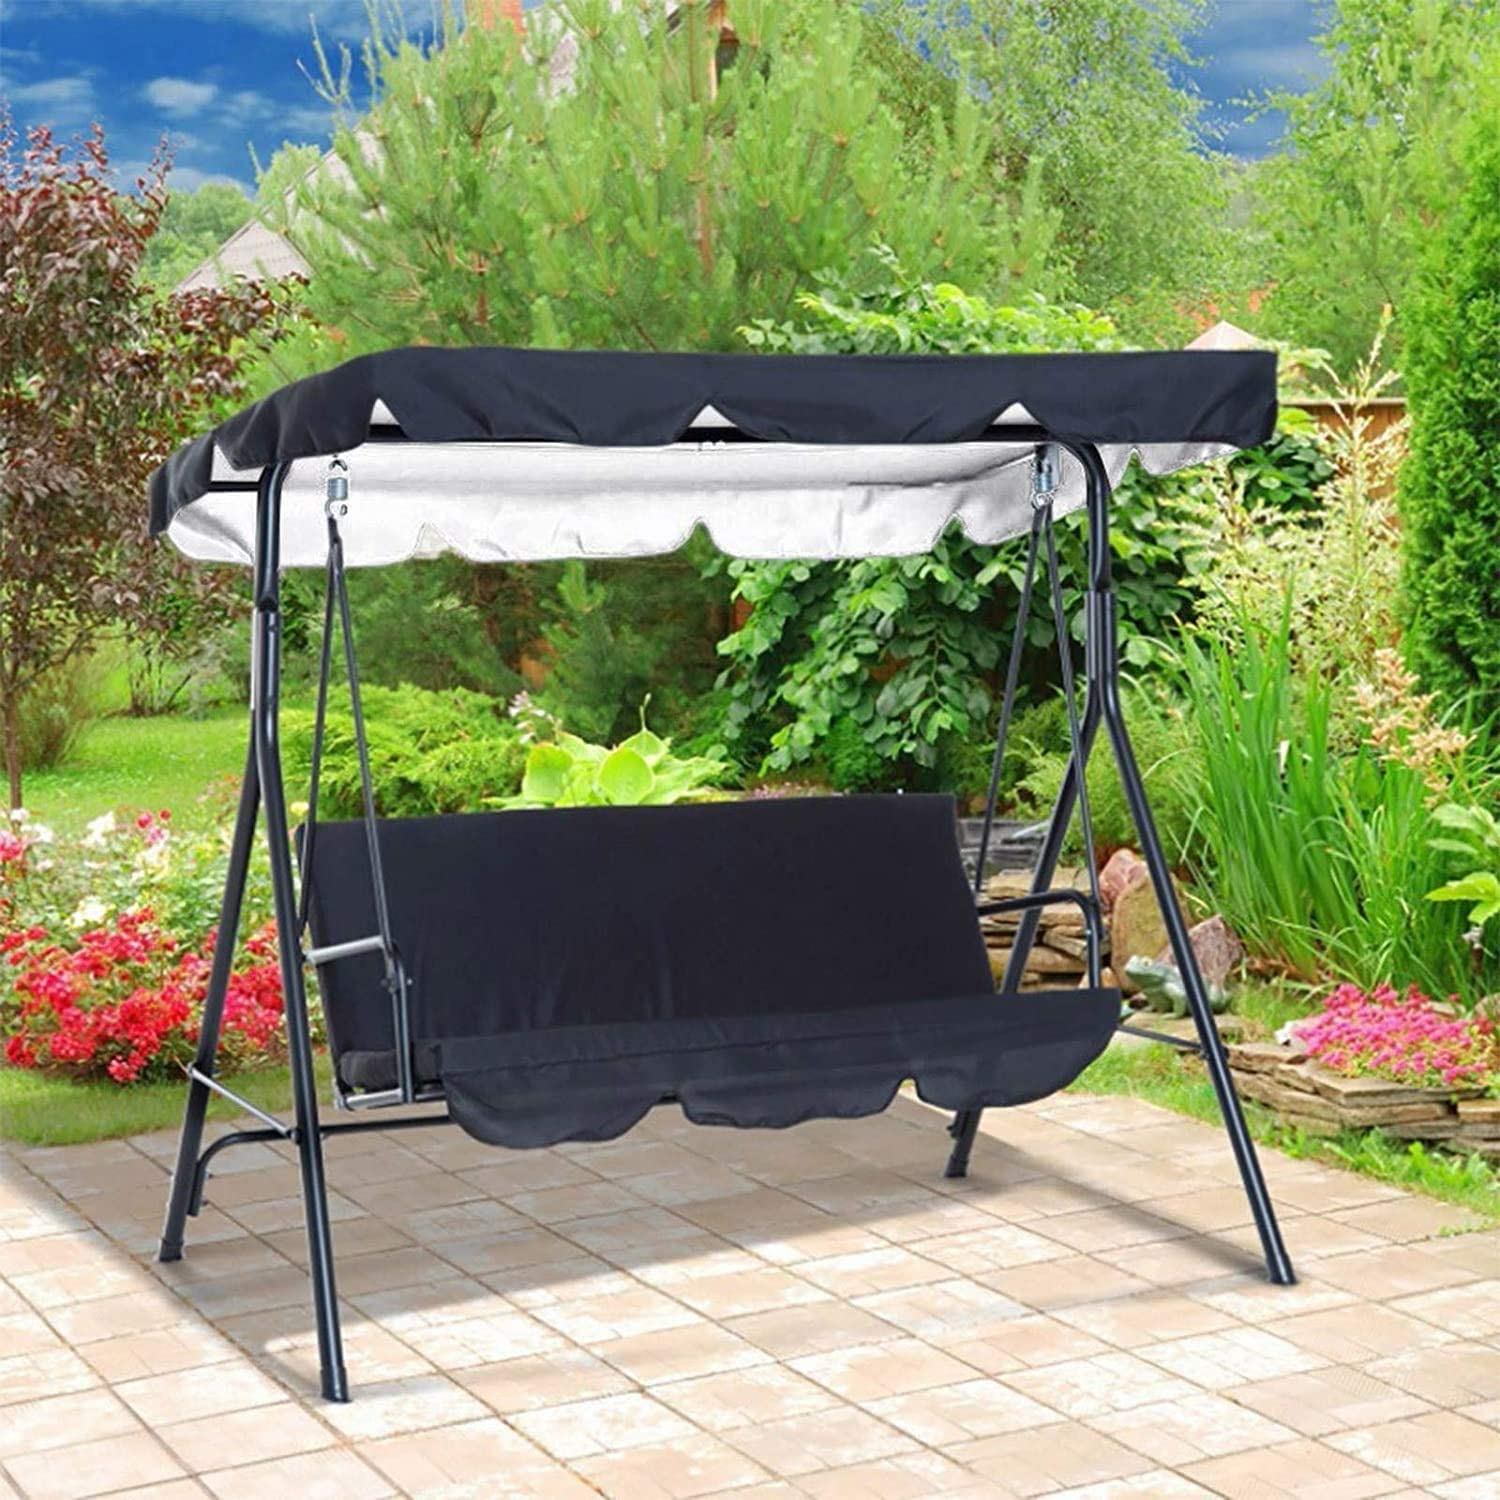 Beige, 56x47x7 Patio Swing Canopy Waterproof Top Cover Set-Replacement Canopy Cover for 2//3-Seater-Swing Chair Awning Glider Swing Cover for Garden//Patio//Poolside//Balcony Swing Chairs